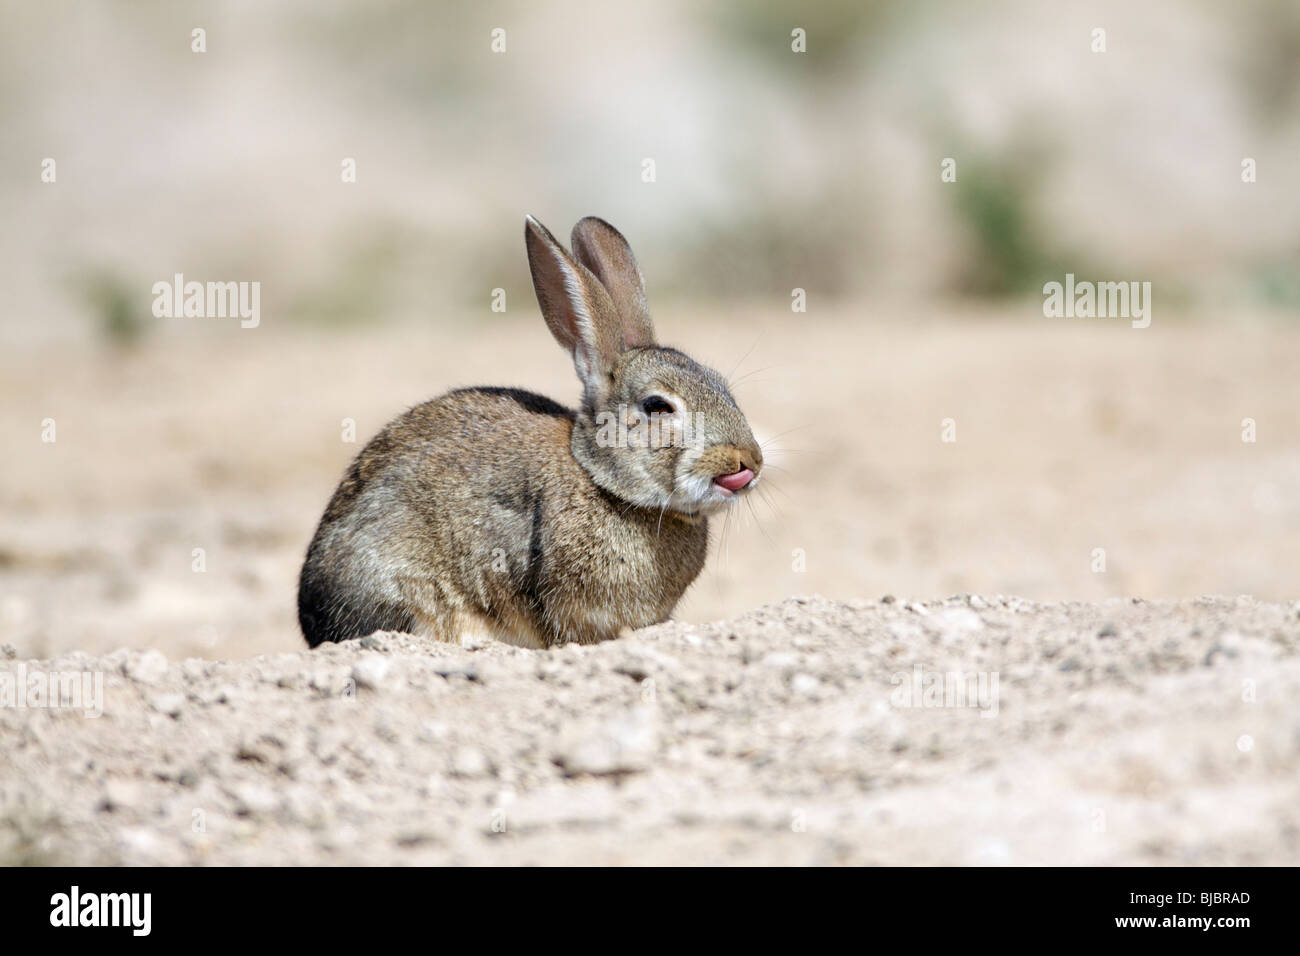 Wild Rabbit (Oryctolagus cuniculus), showing its tongue, Alentejo, Portugal - Stock Image